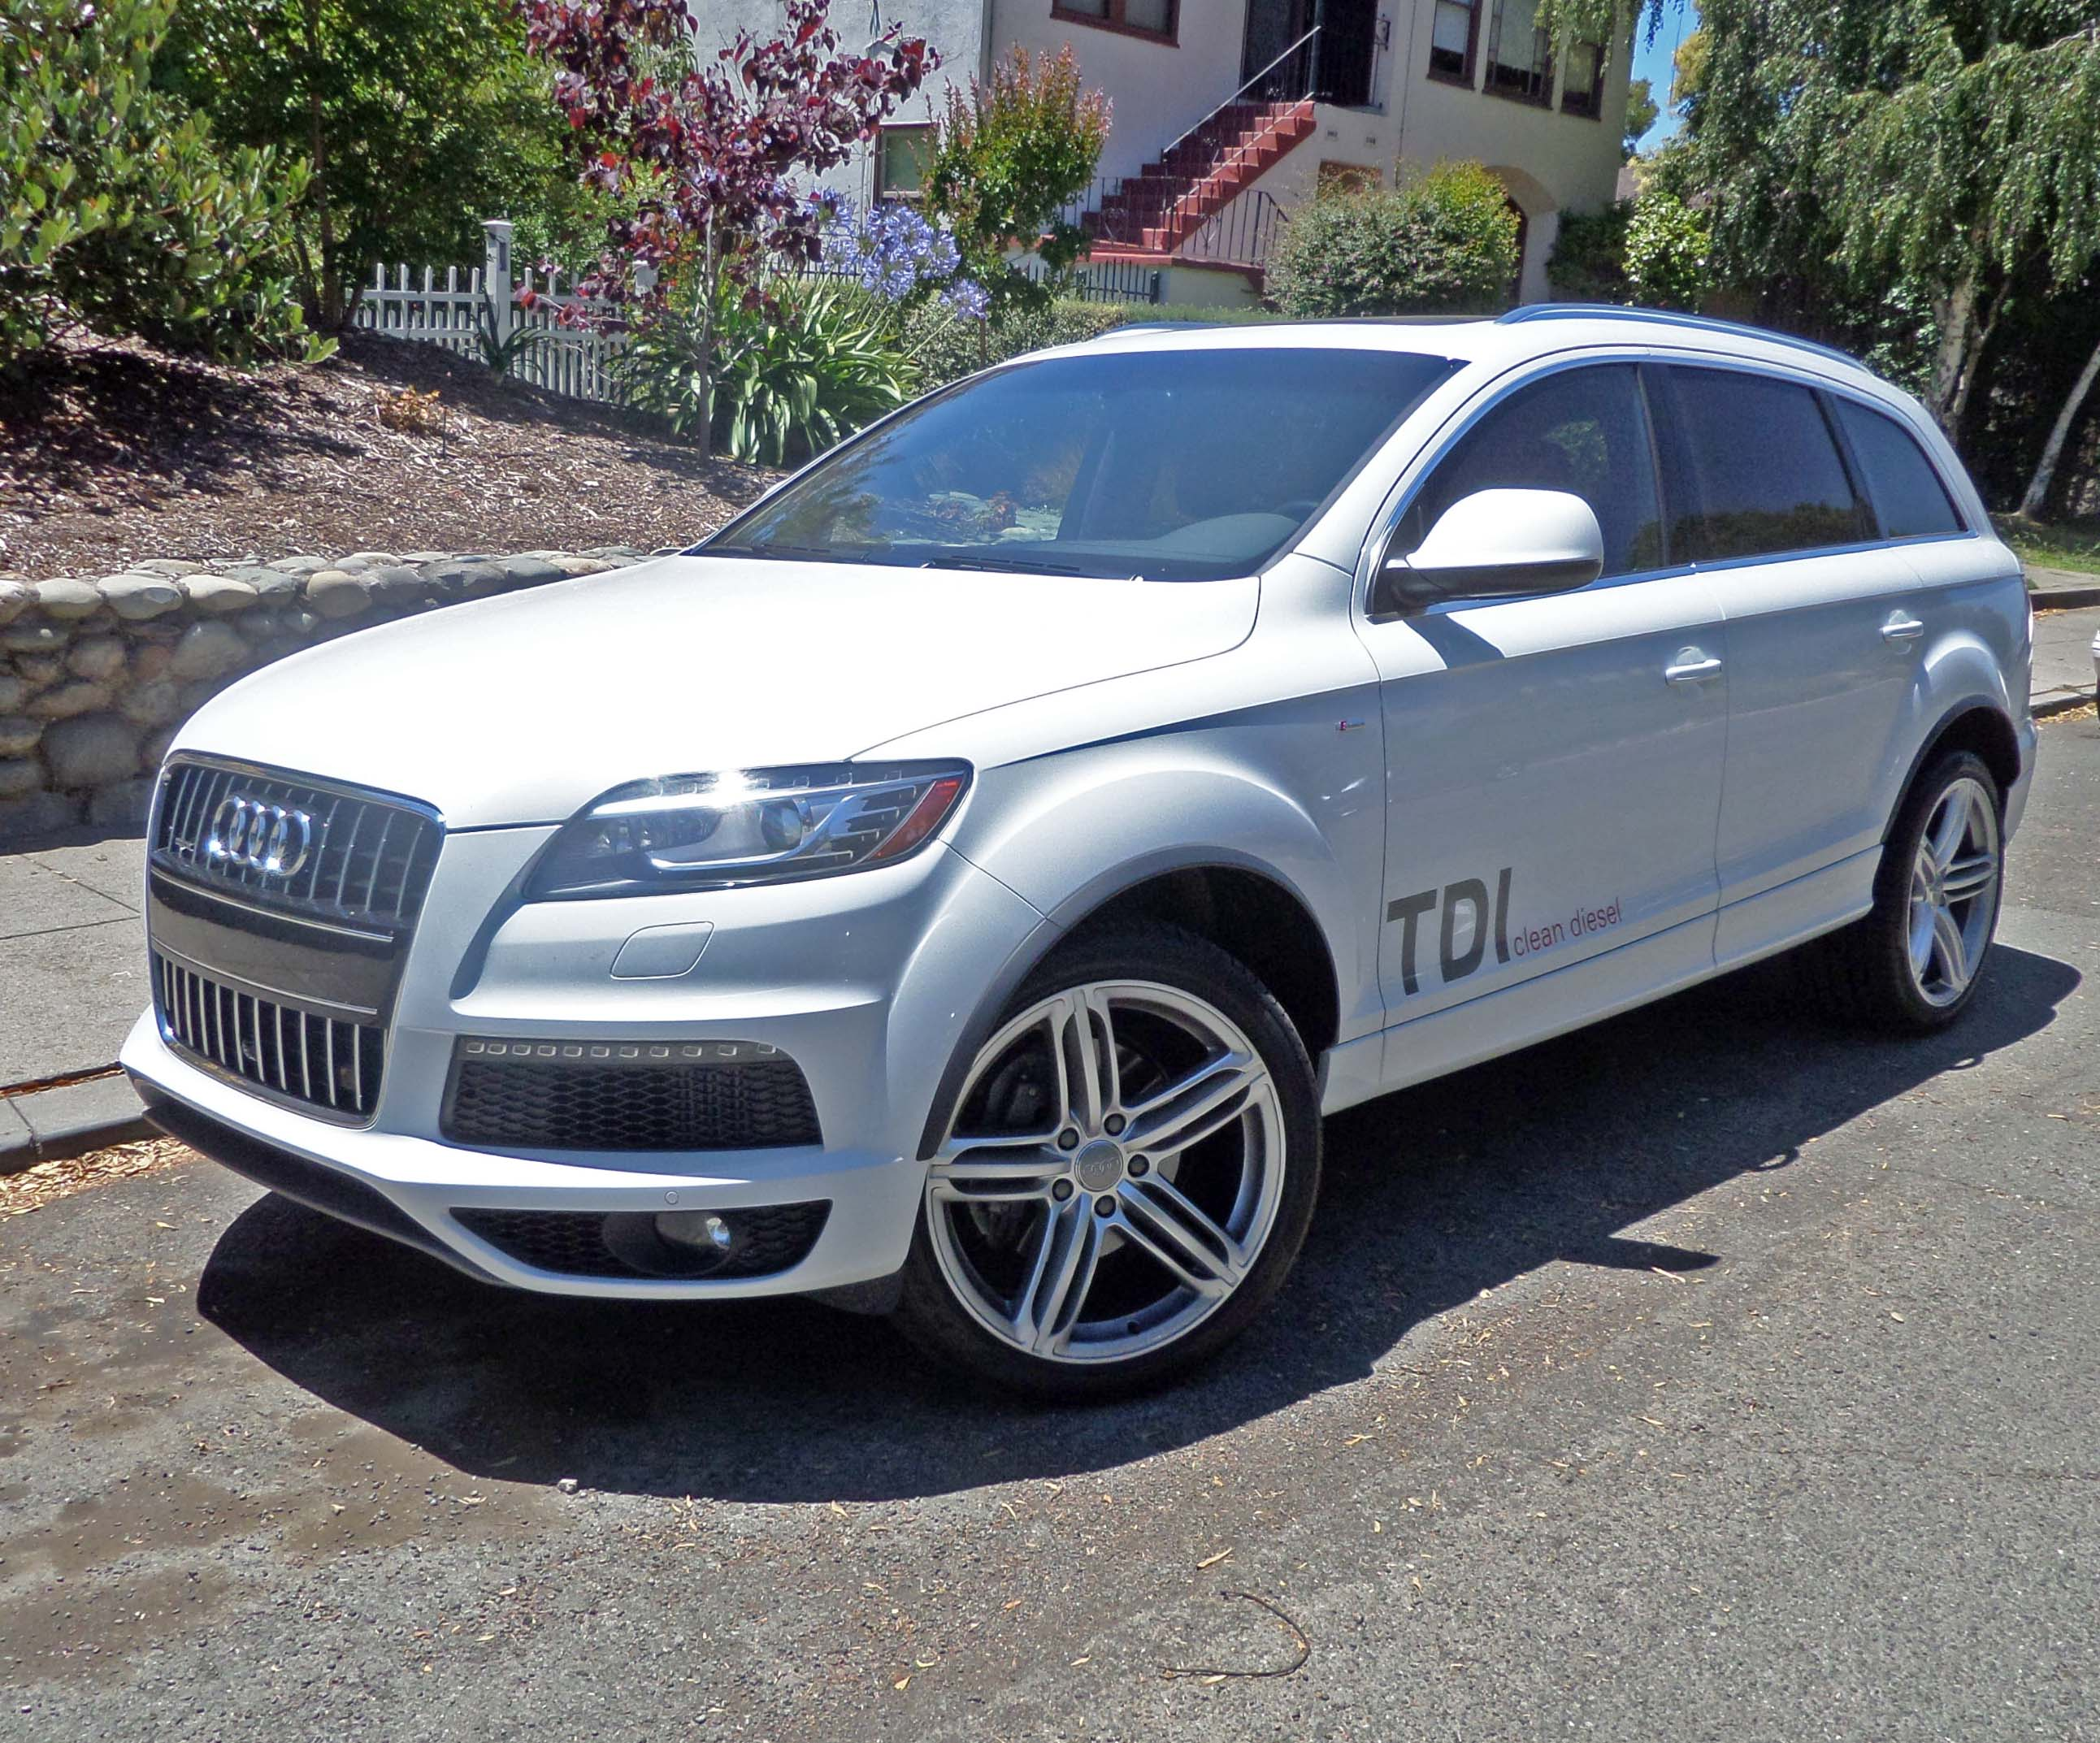 auto camera drive test our audi samsung lsf expert pictures tdi diesel